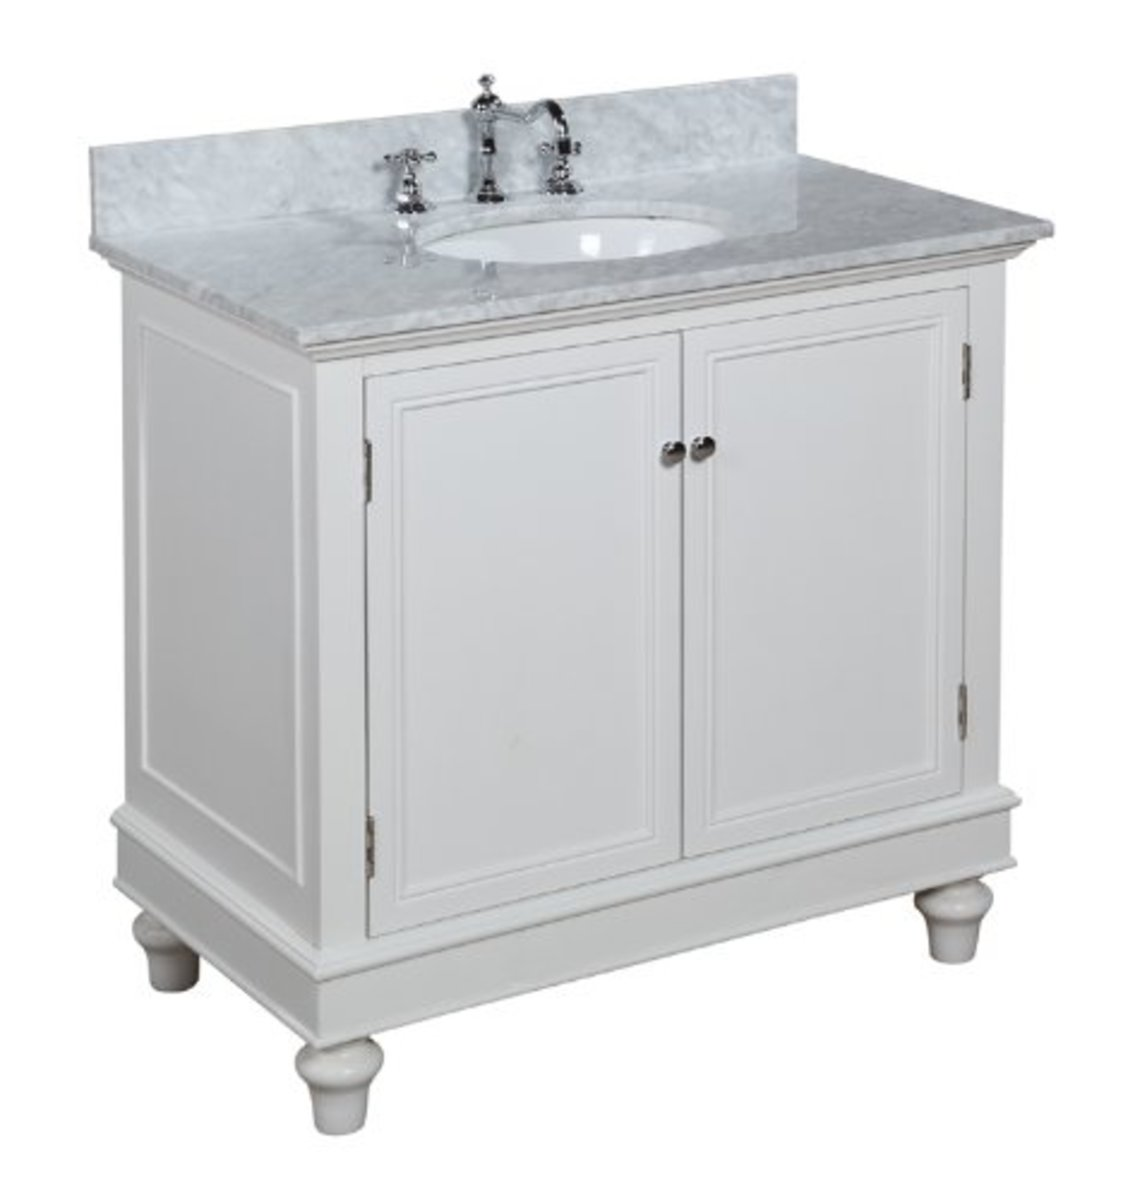 The Bella vanity is a classic look at a great price